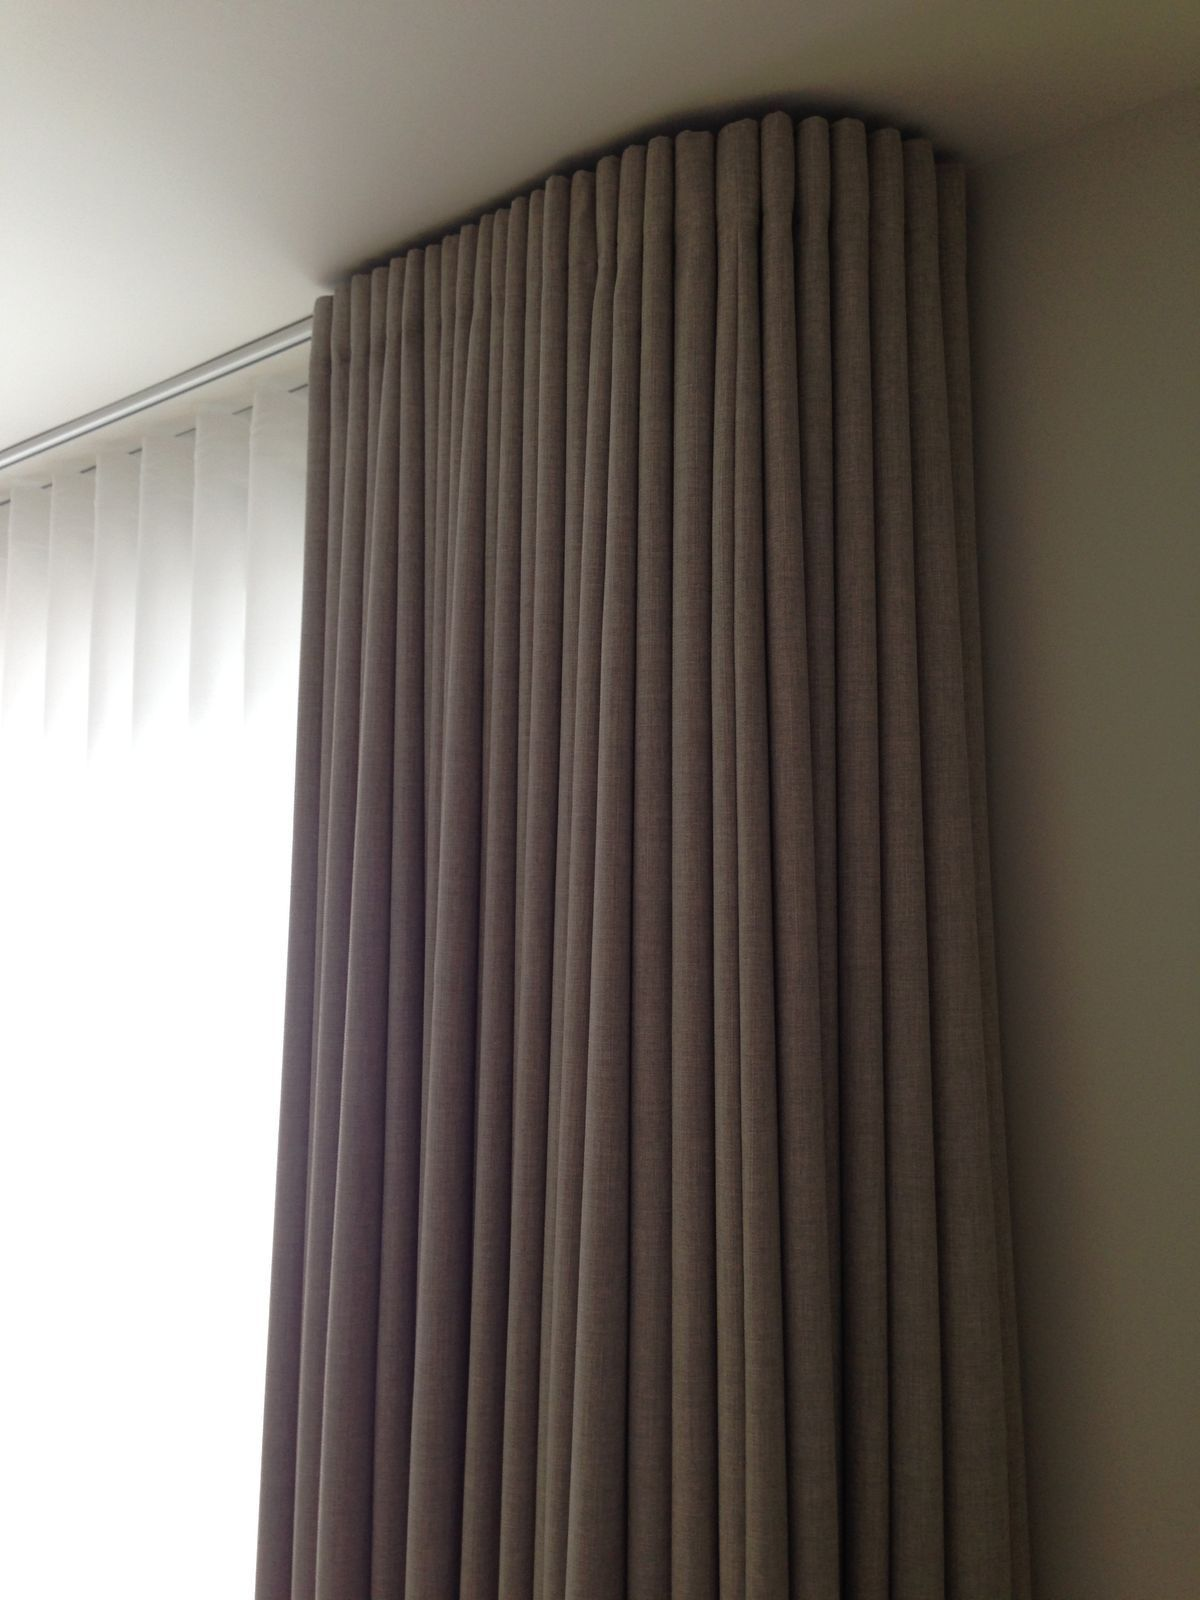 Pin By Ariya Uom On Aman Home Curtains Curtains Curtains